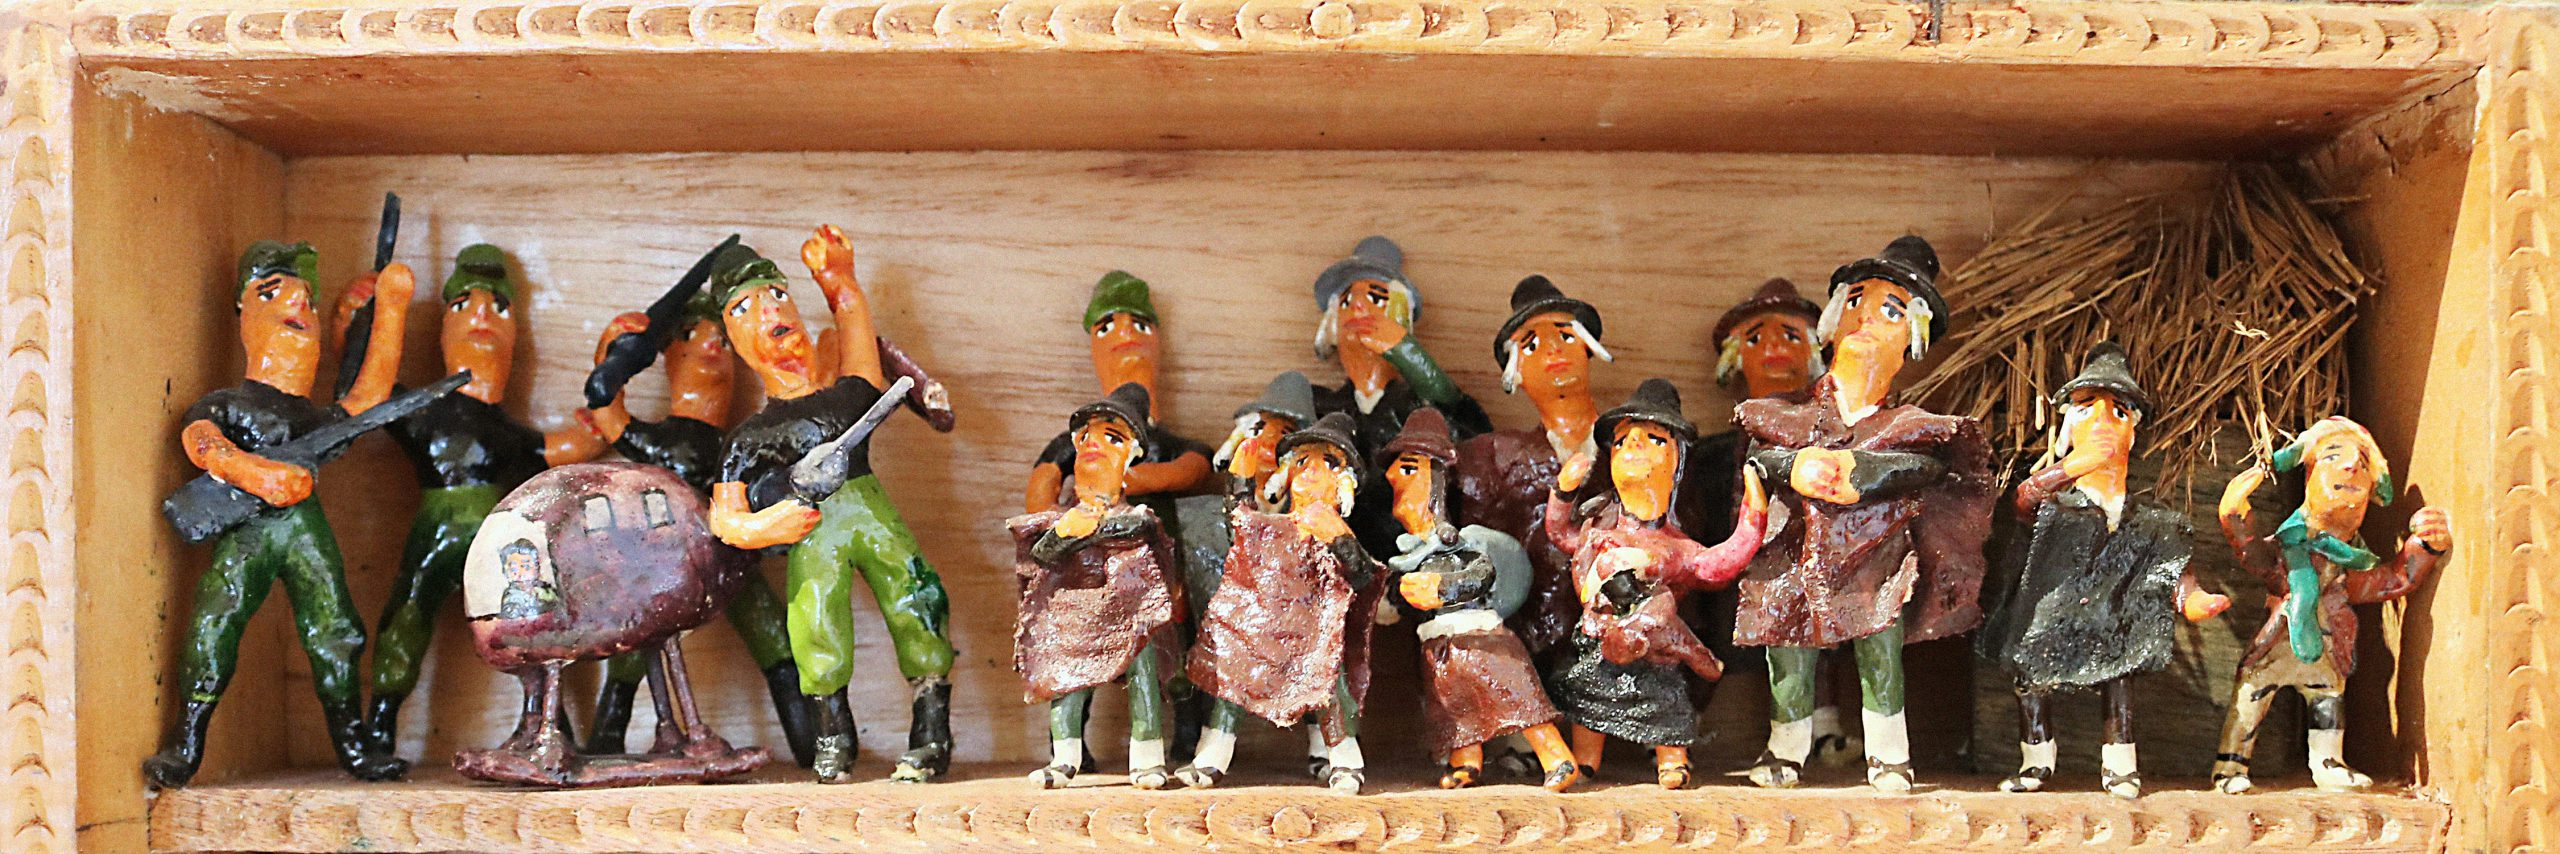 A scene called Helicopter and Commoners within a retablo. The scene portrays two groups of humanlike figurines. On the left are four men dressed in military-like uniforms, holding guns. These men stand by a helicopter with a pilot seen inside. On the left is a group of commons wearing ponchos and hats with looks of worry on their faces. The commoners stand in from of what appears to be a structure with a straw roof.